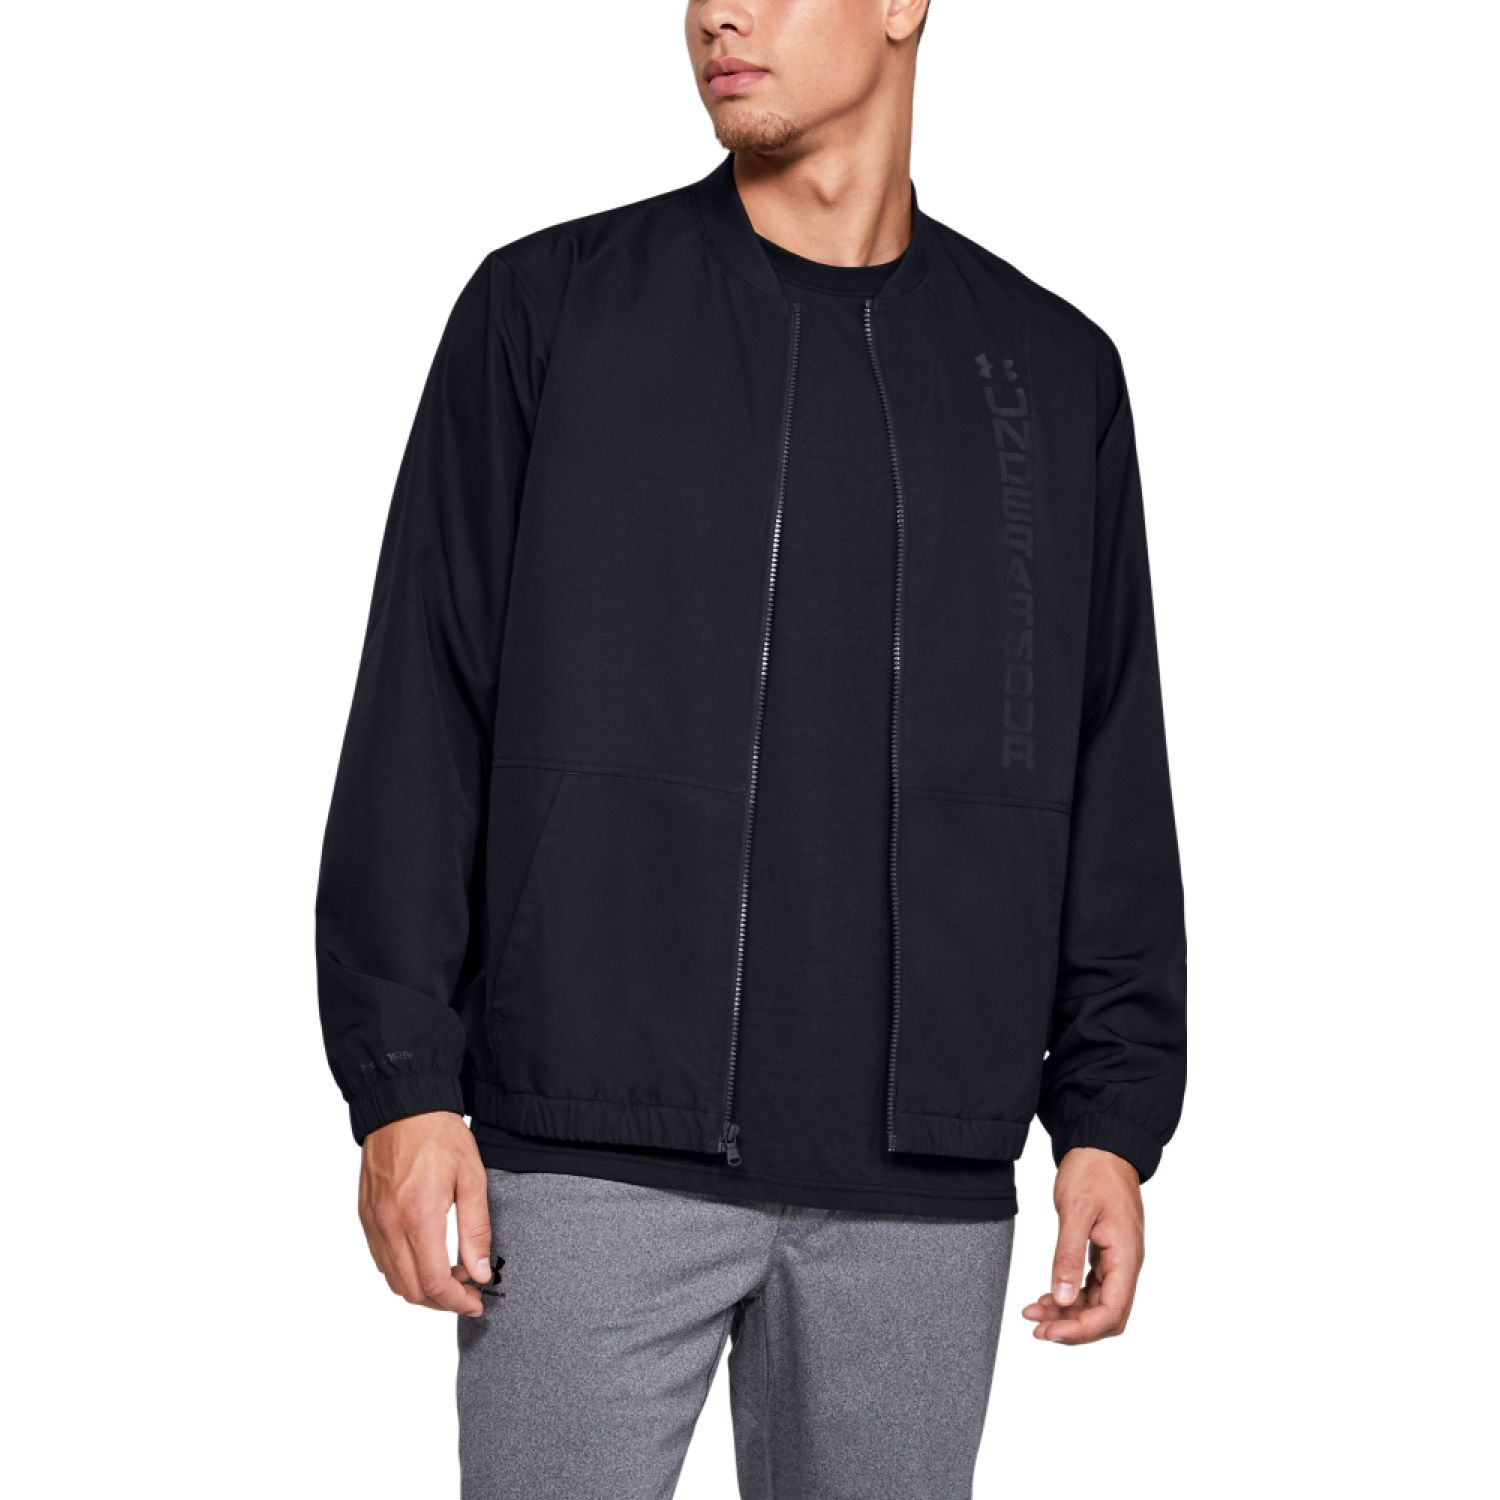 Under Armour Unstoppable Essential Bomber Negro Casacas deportivas